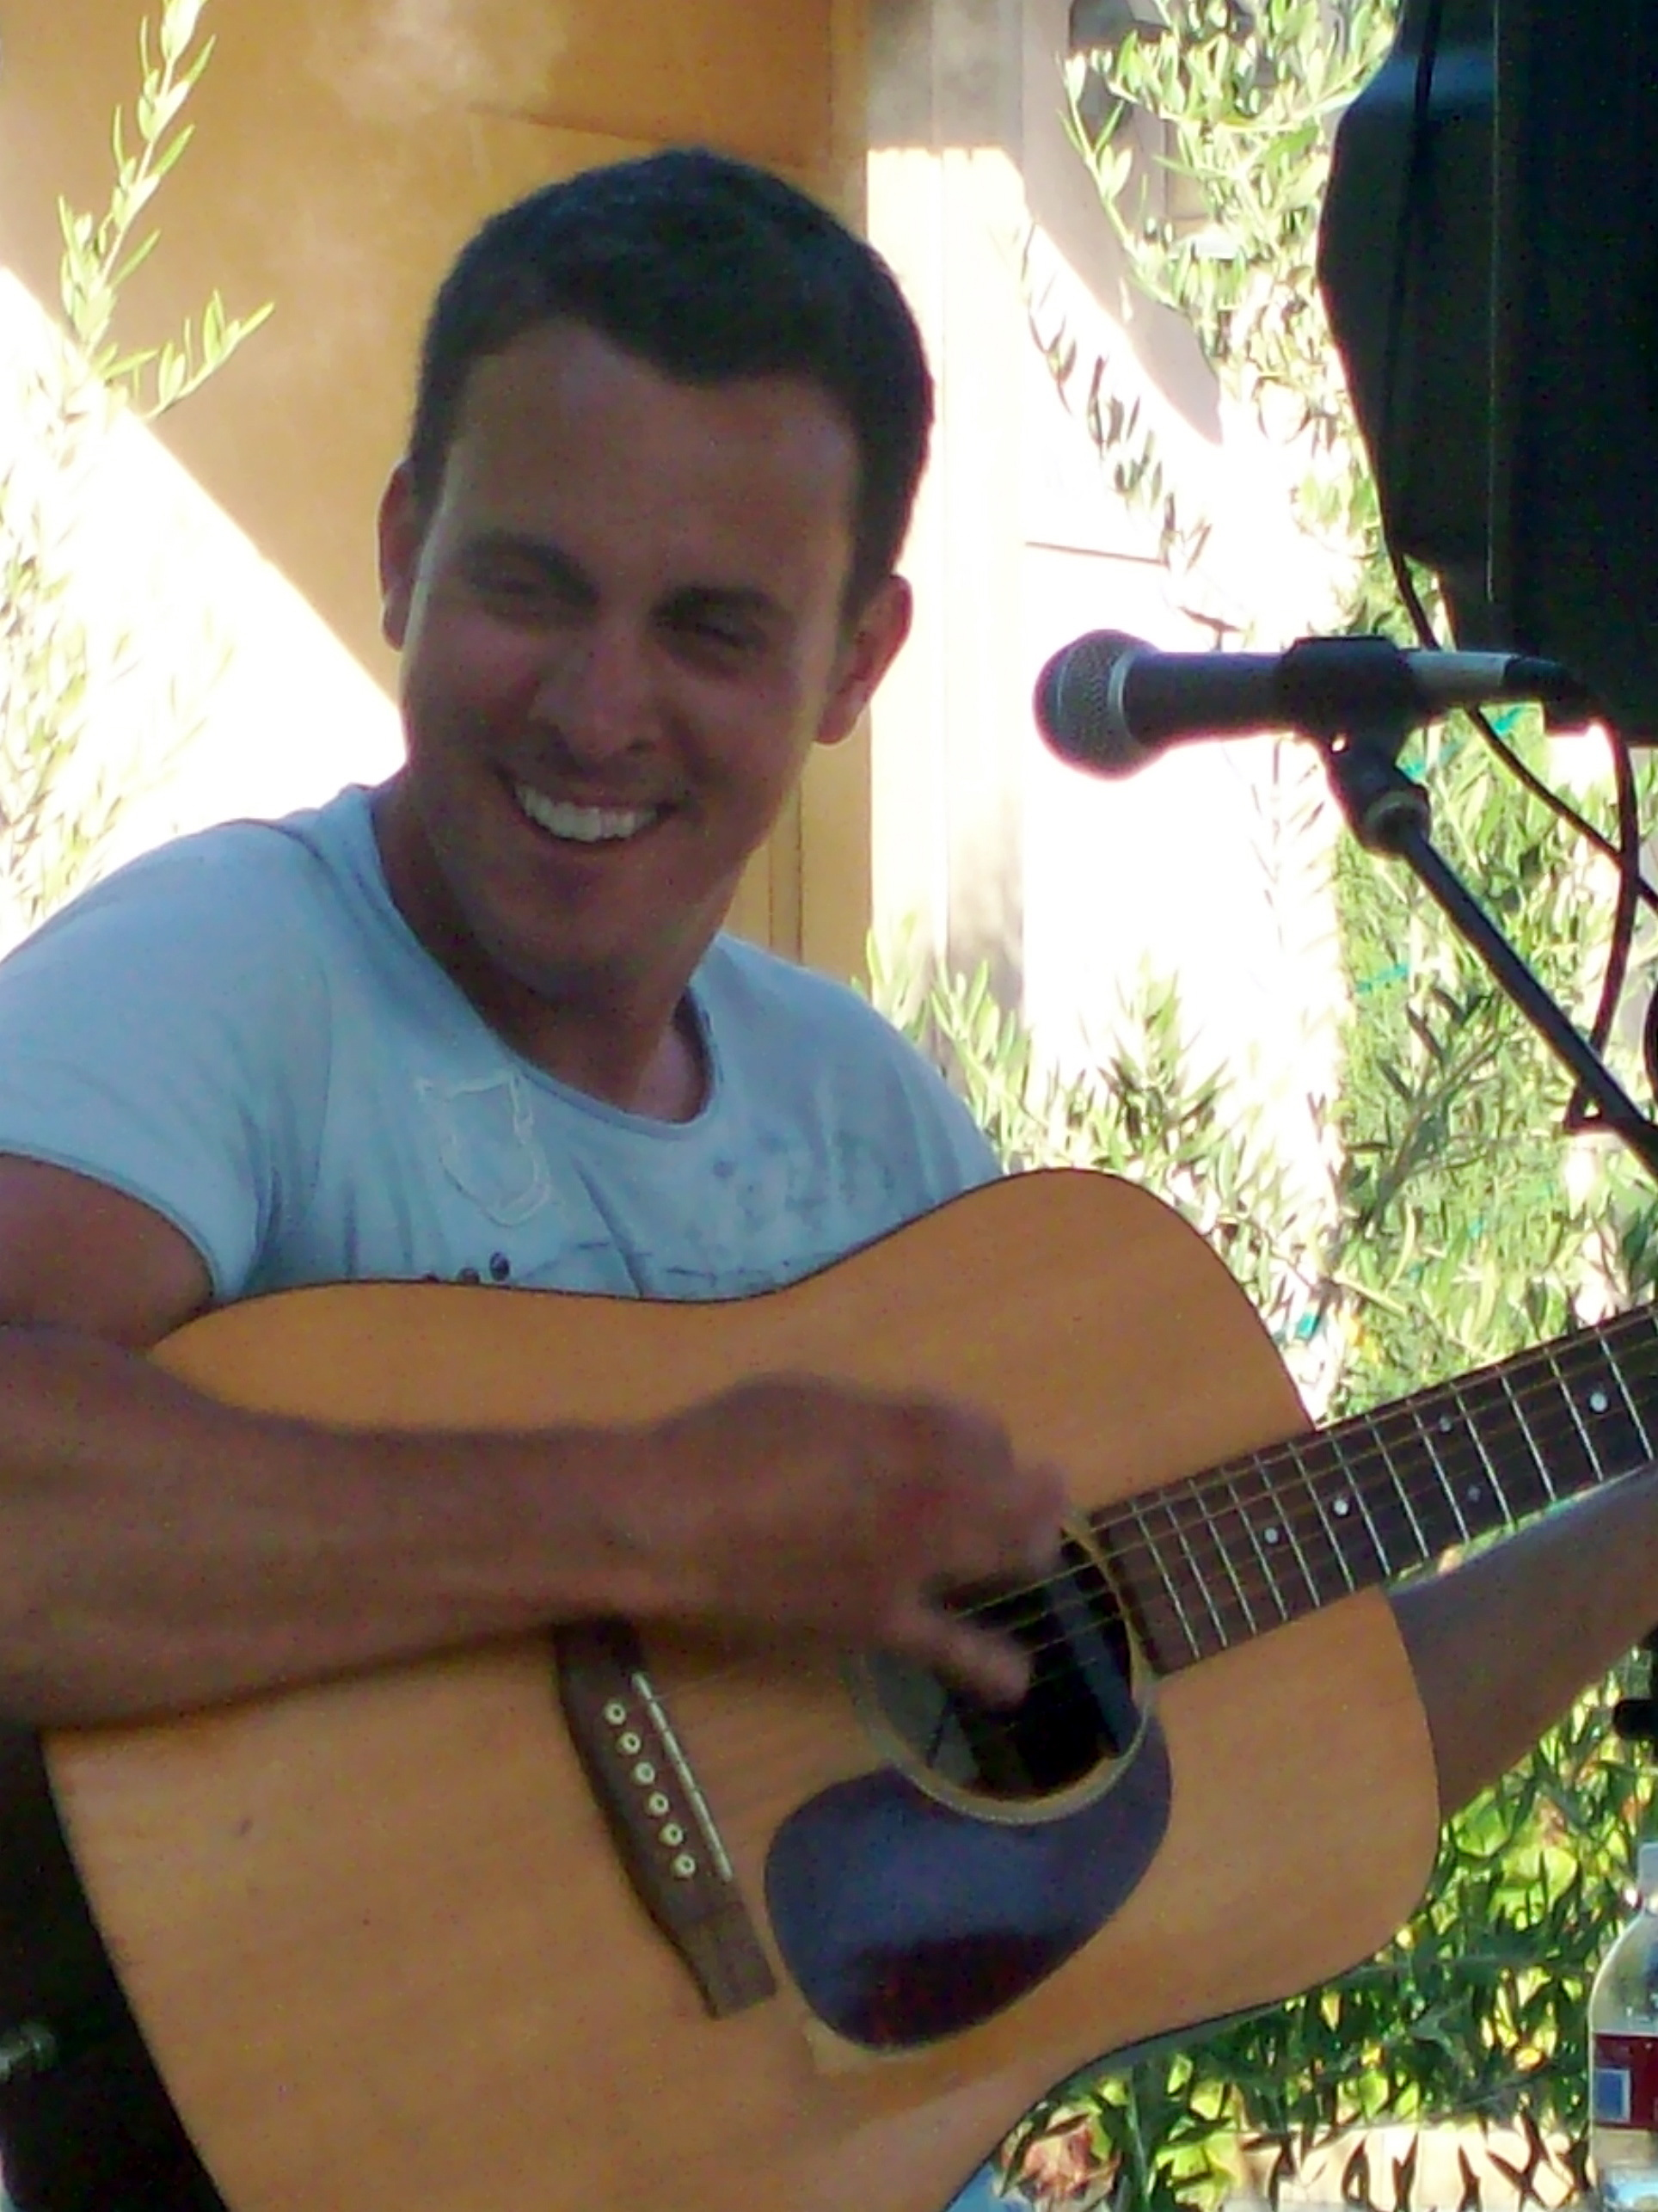 Wedding, Guitar, Acoustic, Live music, Better together, Jack johnson, Mike brian productions live music dj service, Jason mraz, Ben folds, The luckiest, Howie day, David gray, Elton john, Cat stevens, Marc cohn, True companion